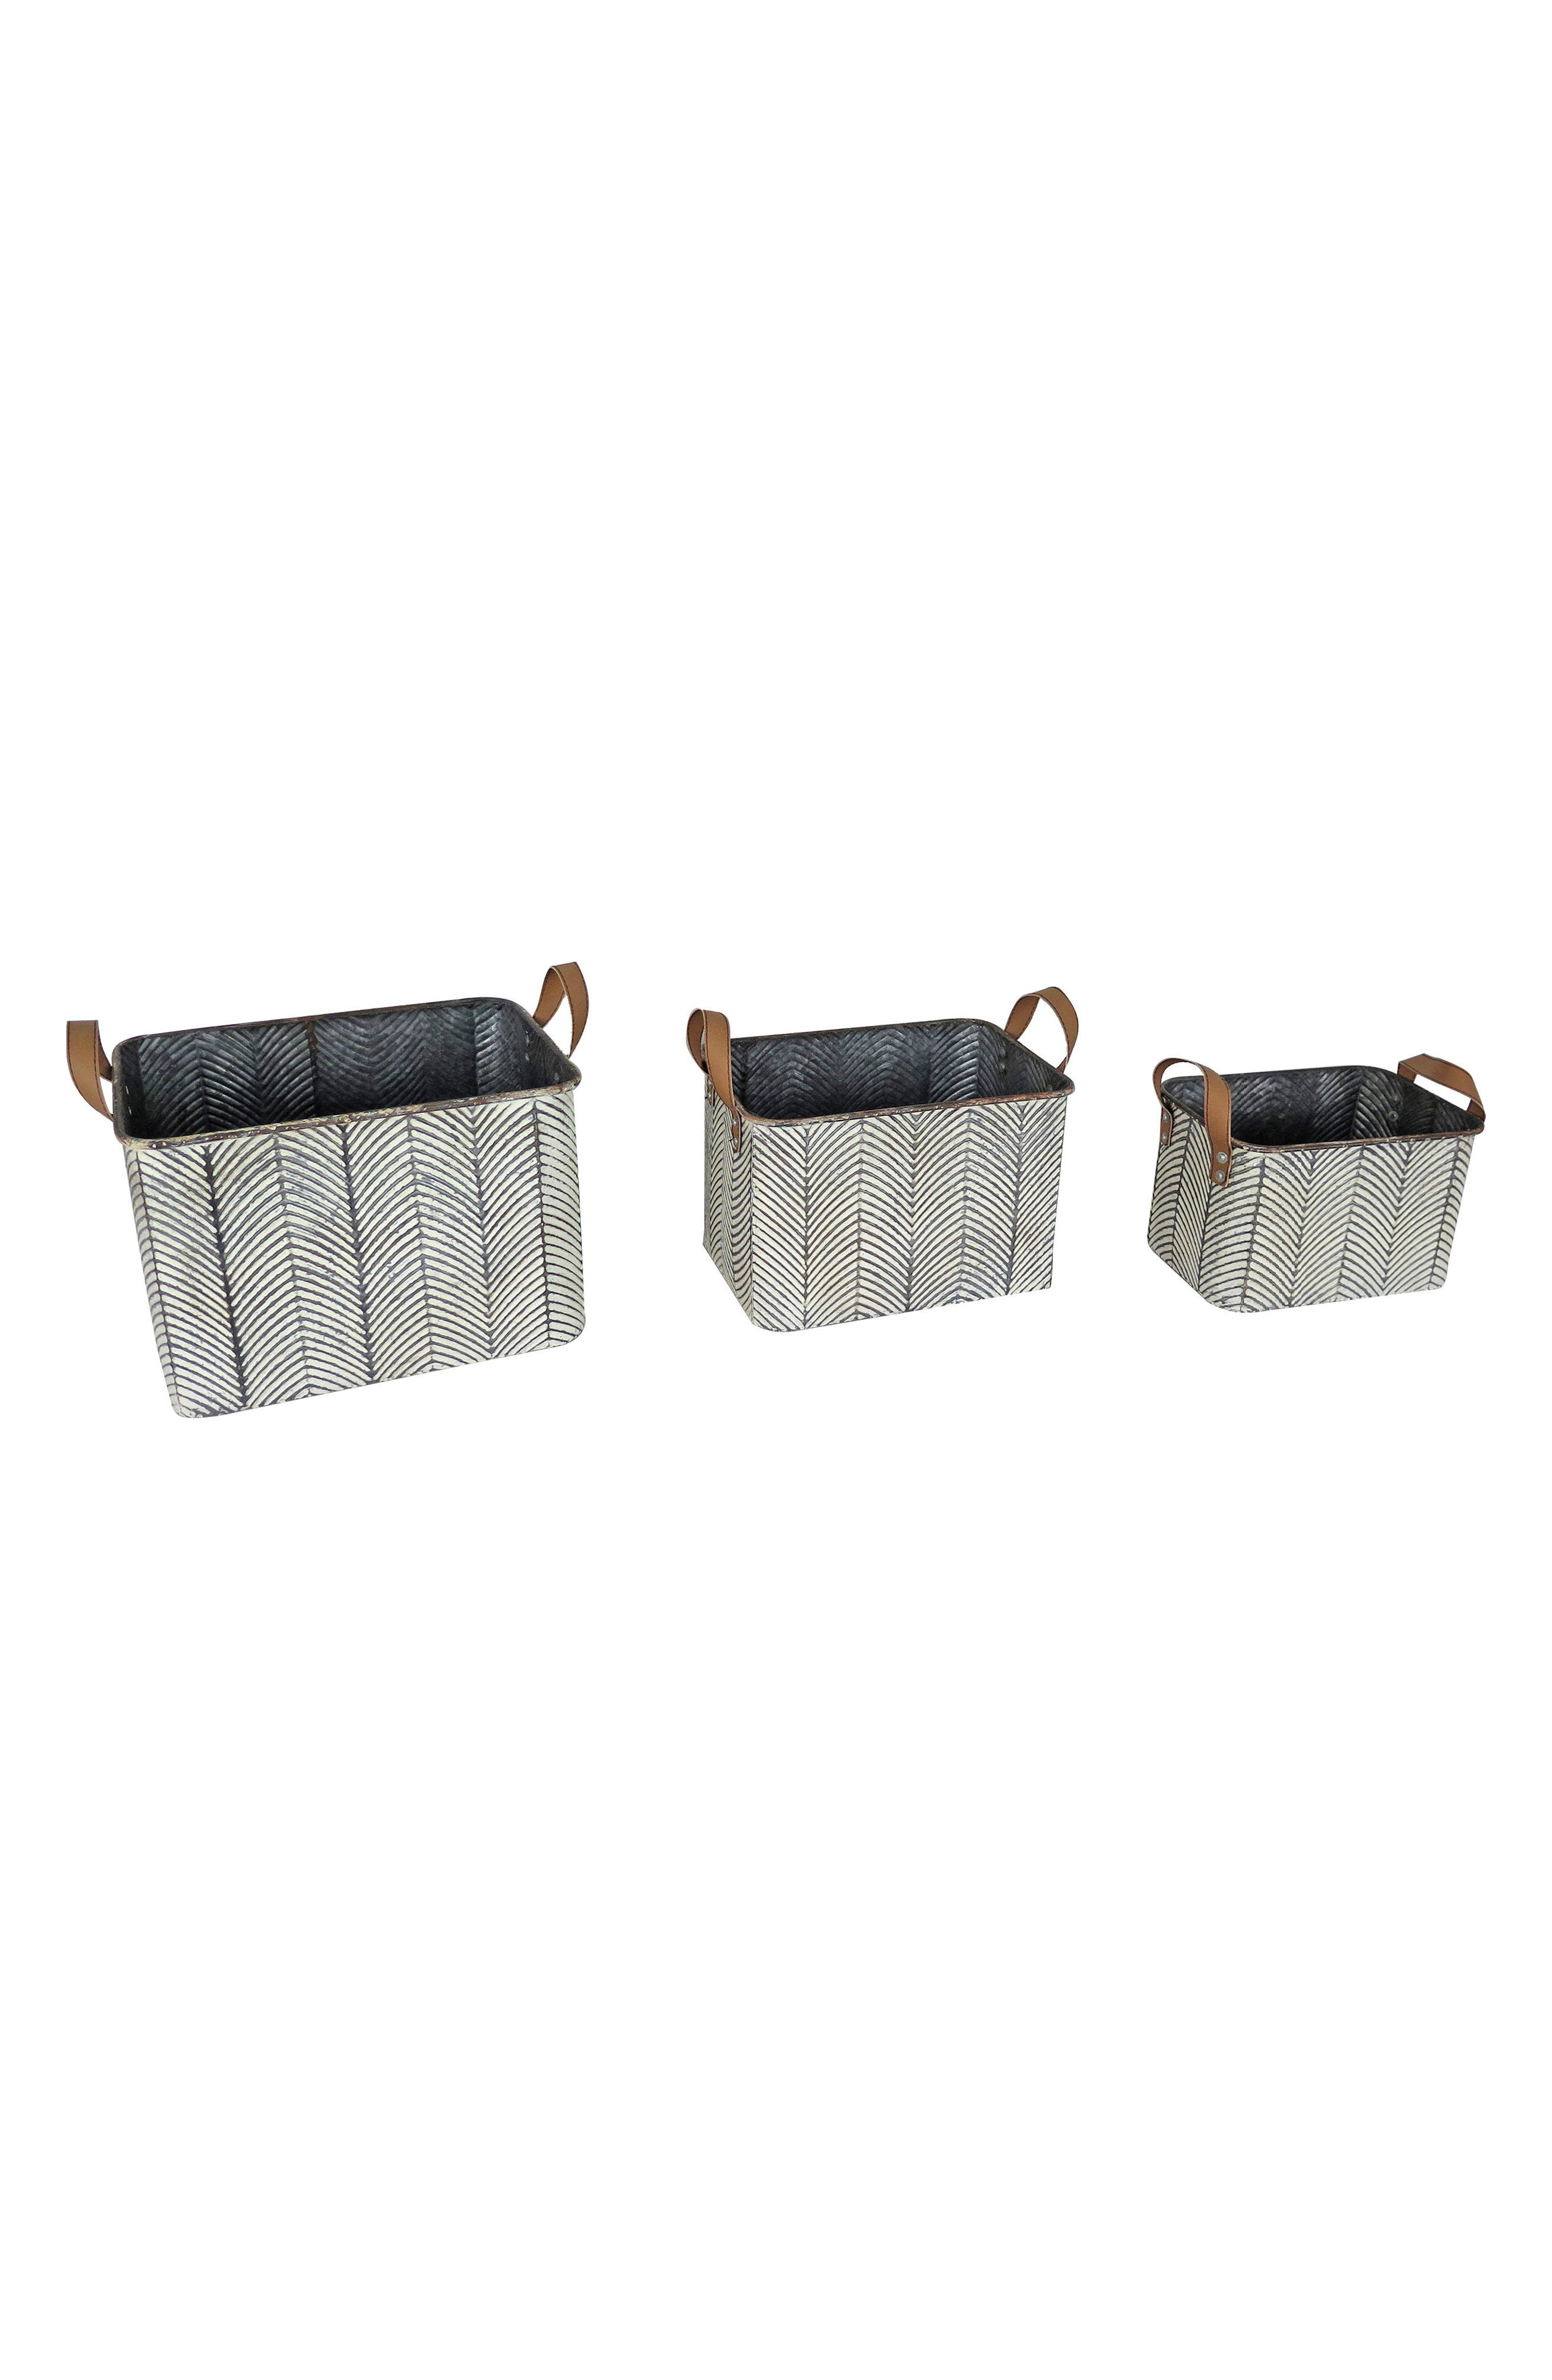 Foreside Braxton Set of 3 Baskets